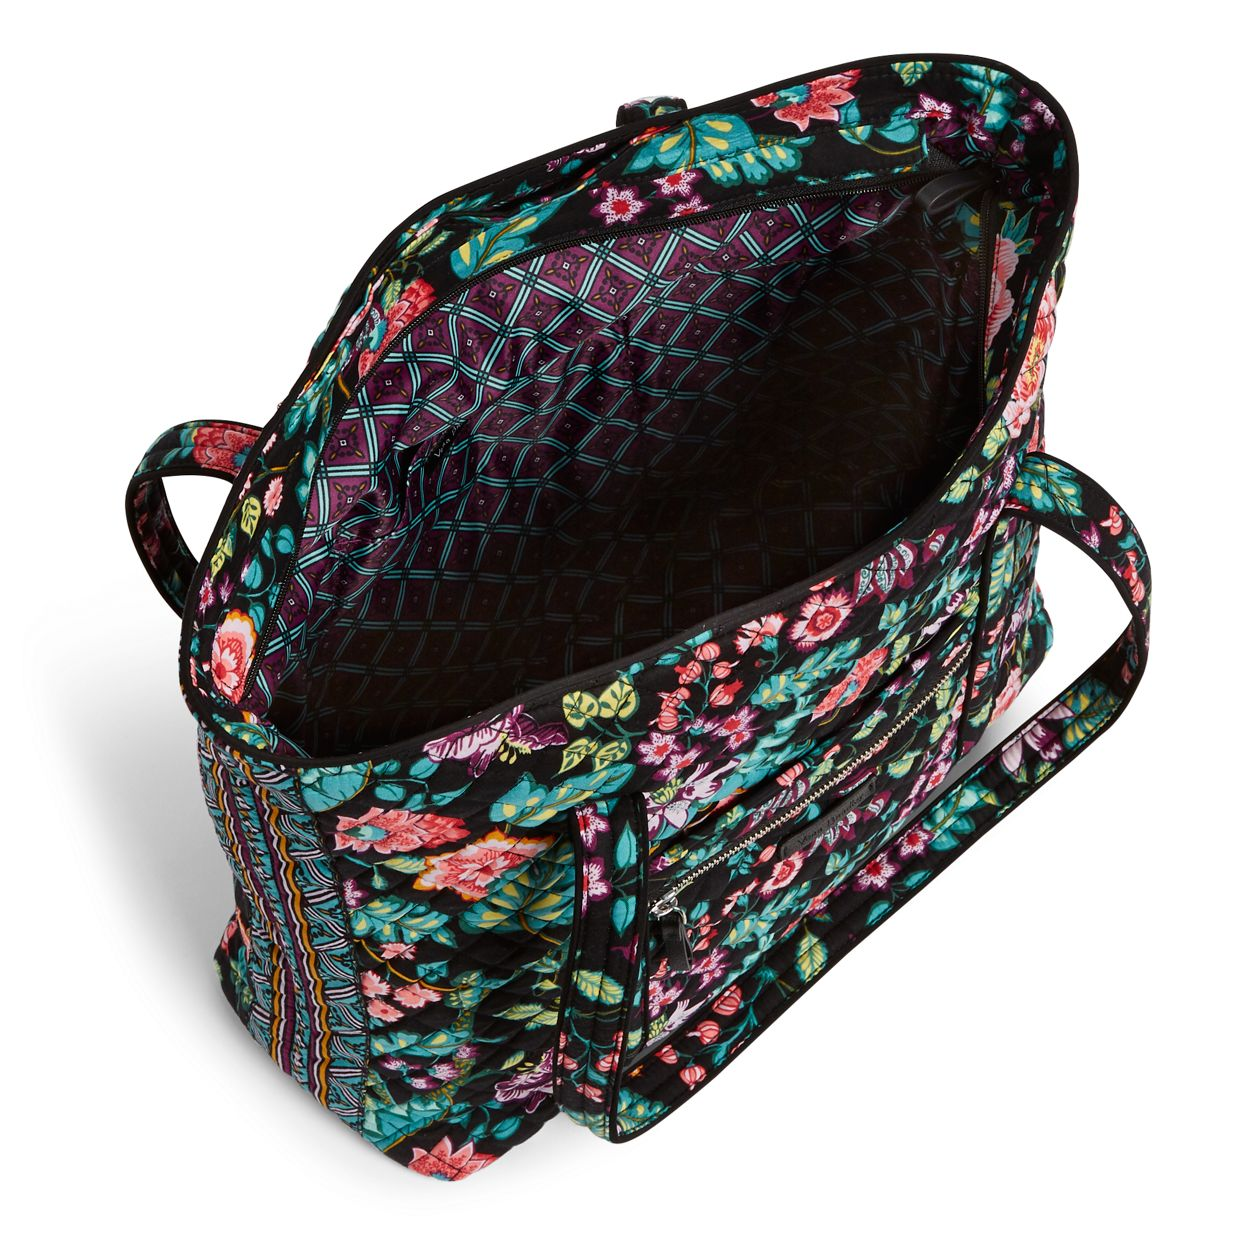 ... Image of Iconic Vera Tote in Vines Floral 0d348f2749d8c